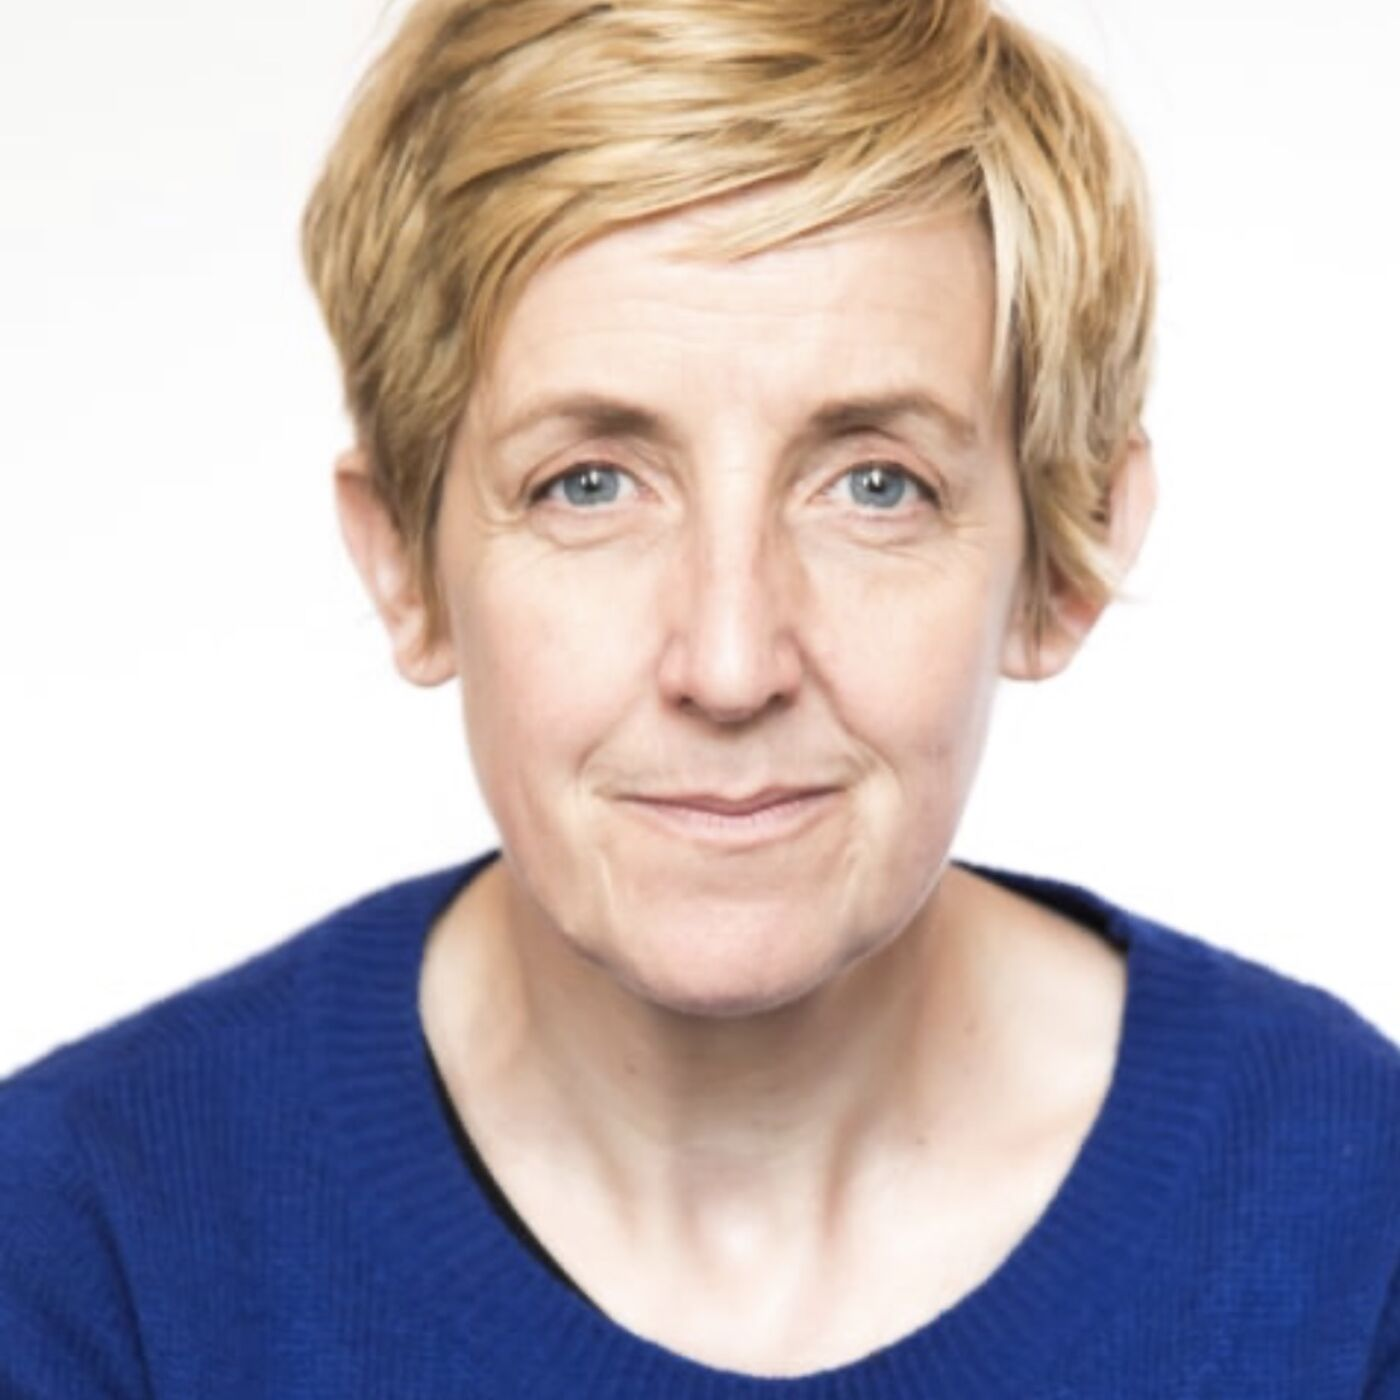 Corrie at 60: Happy Birthday Coronation Street! Now, Always and Forever - reflections from Julie Hesmondhalgh